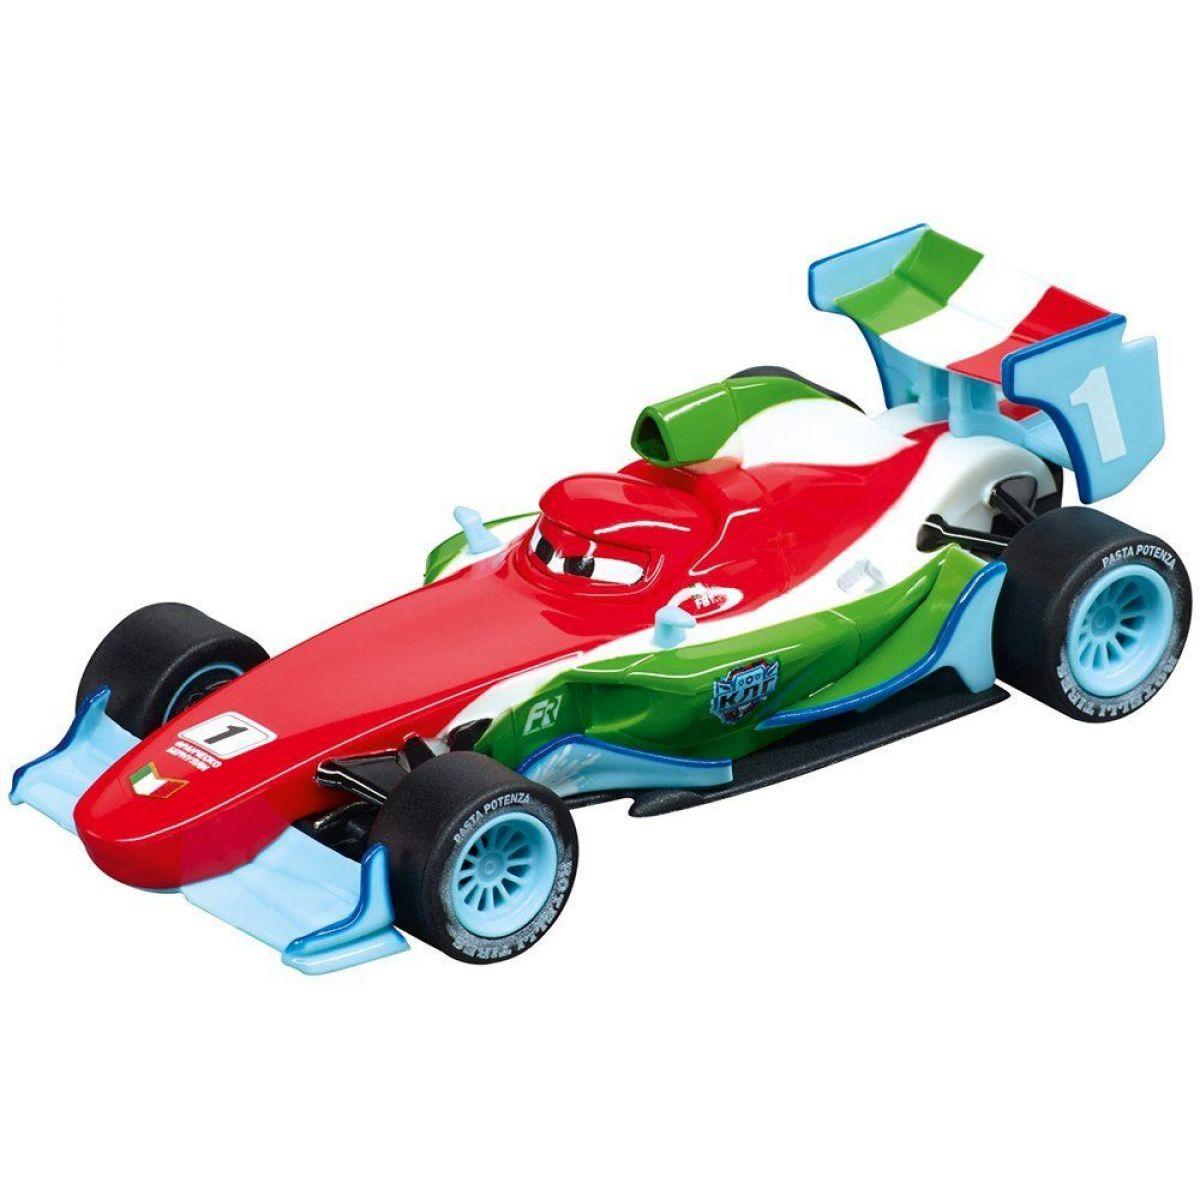 Carrera GO Disney Cars Ice Francesco Bernoulli